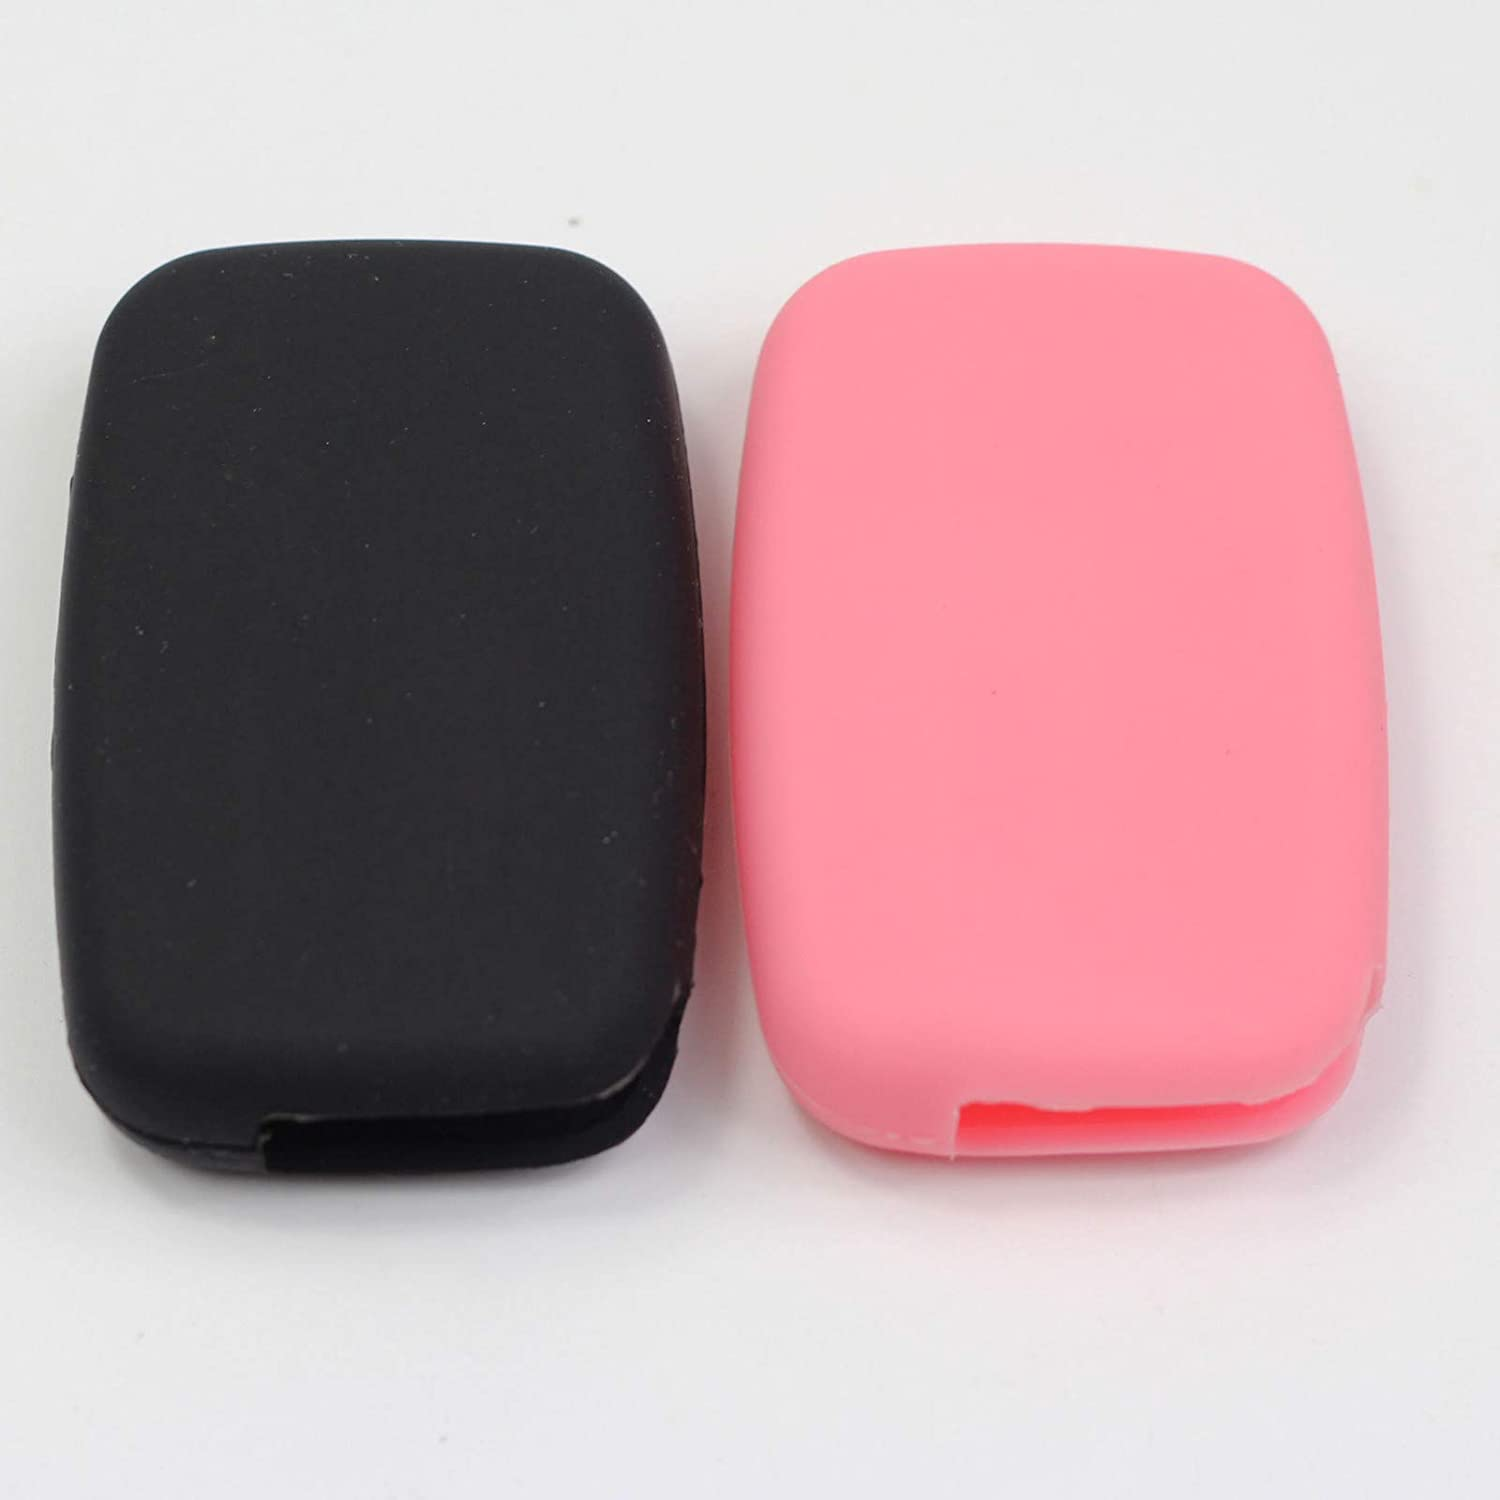 Btopars 2pcs Black Remote Smart Key Fob Silicone Case Cover Protector Holder Compatible with Land Rover LR2 LR4 Discovery Range Rover Sport Evoque